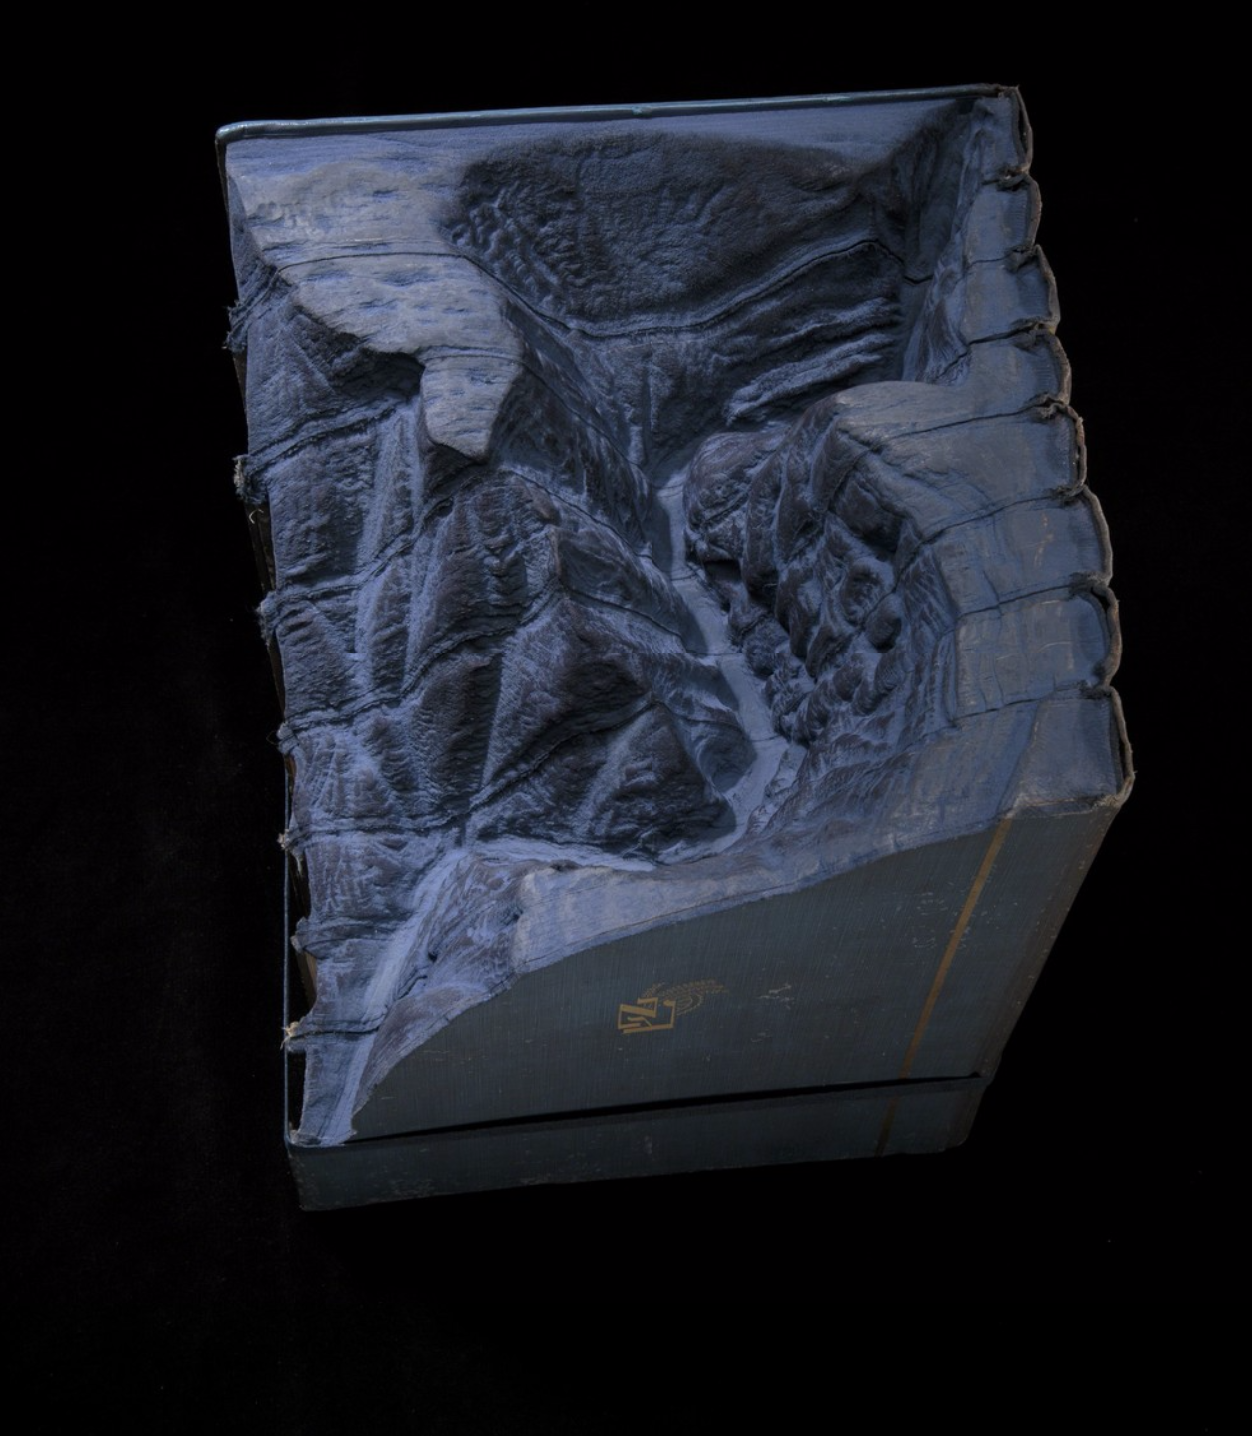 Guy Laramee Creates Hyperrealistic Topographic Landscapes Carved into Old Books - Pilgrims For Noah B